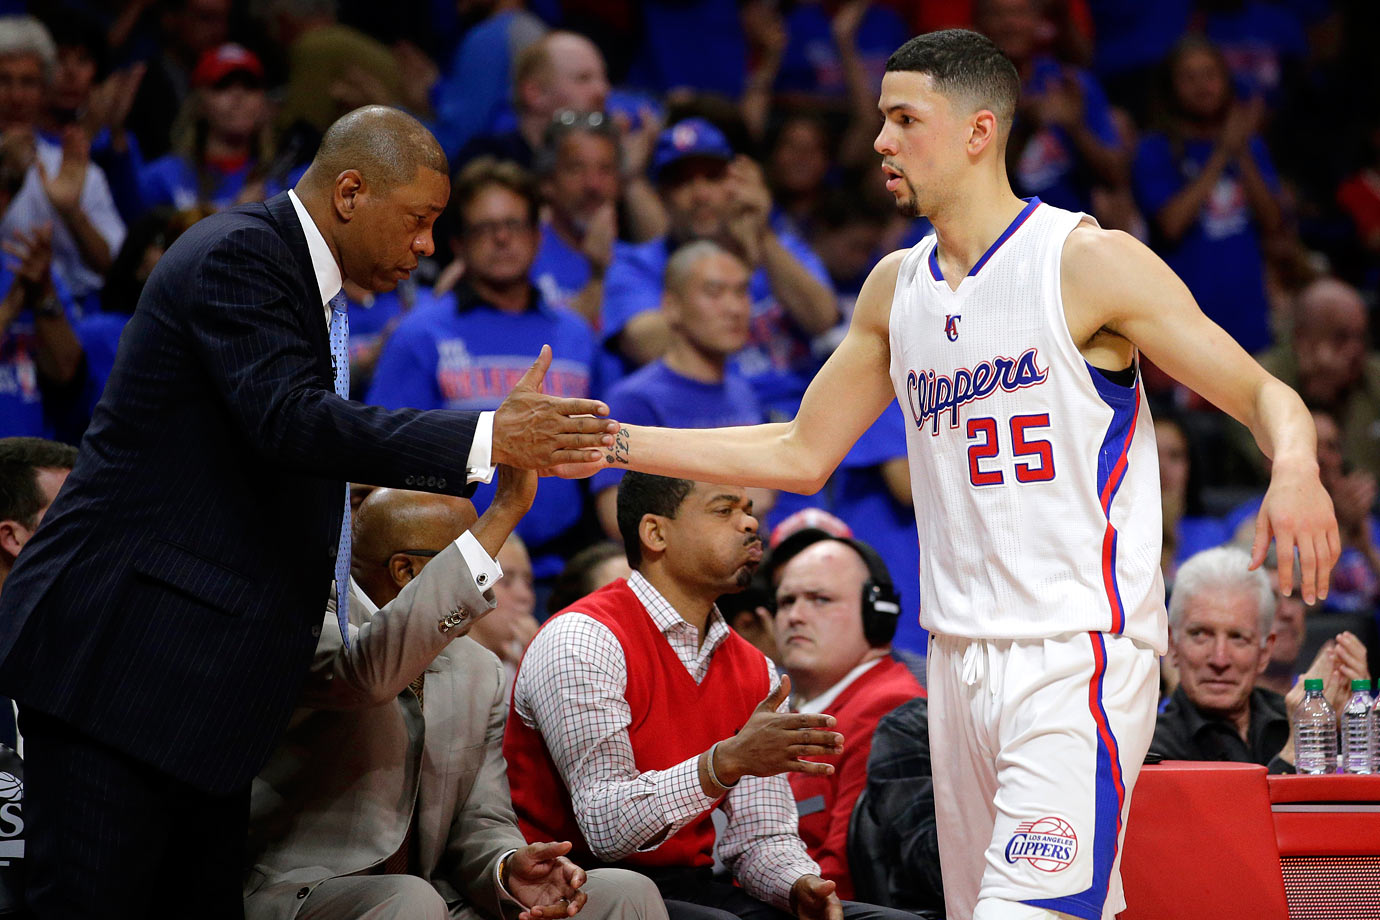 Clippers coach and former NBA point guard Doc Rivers traded for his son on Jan. 15, 2015, making Austin the first player in NBA history to play for a team coached by his father. Austin was drafted 10th overall by New Orleans in 2012.